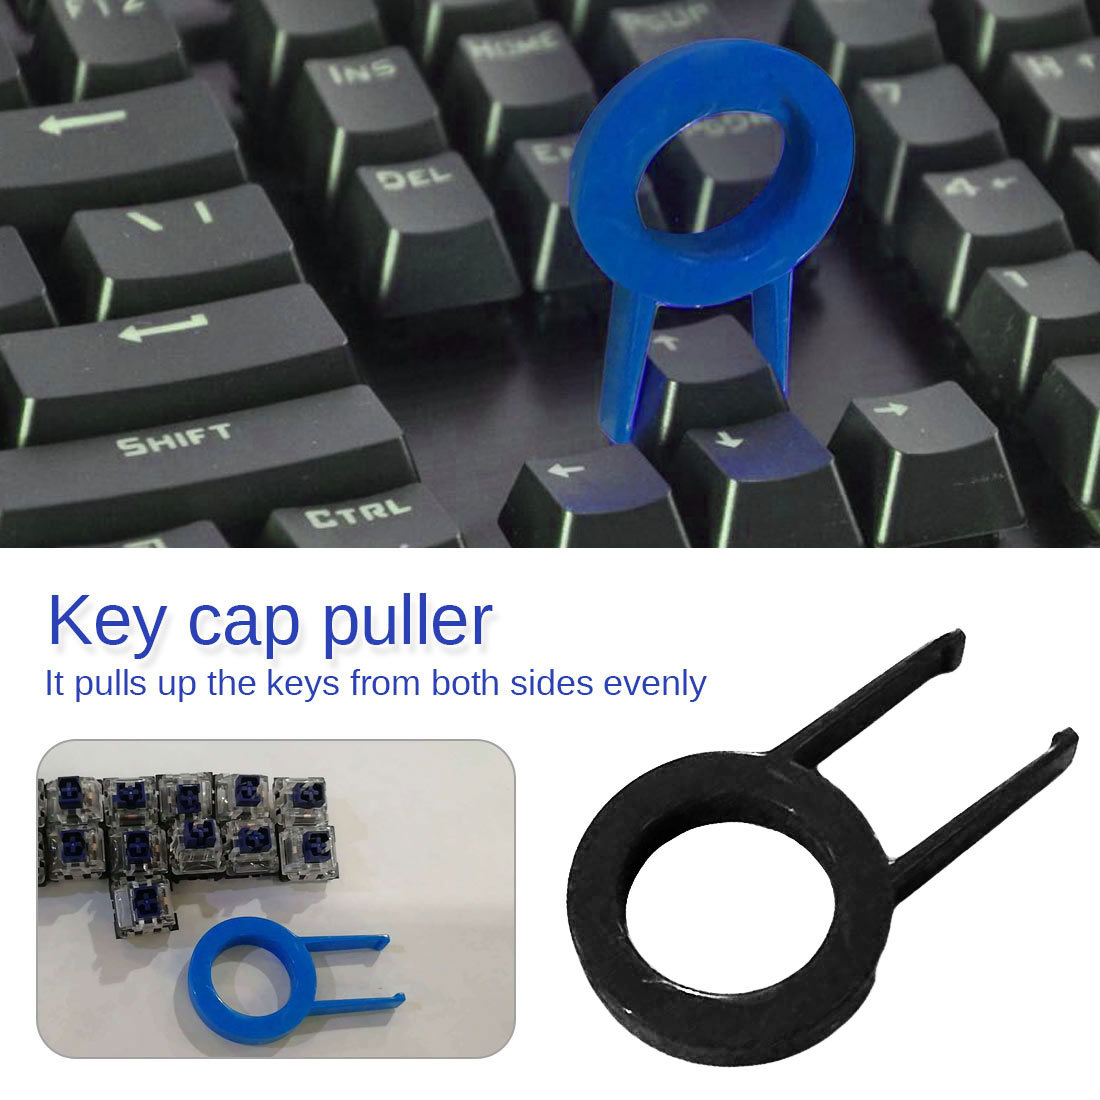 Mechanical Keyboard Keycap Puller Remover For Key Cap Fixing Tool Z09 Drop Ship Keycap Puller